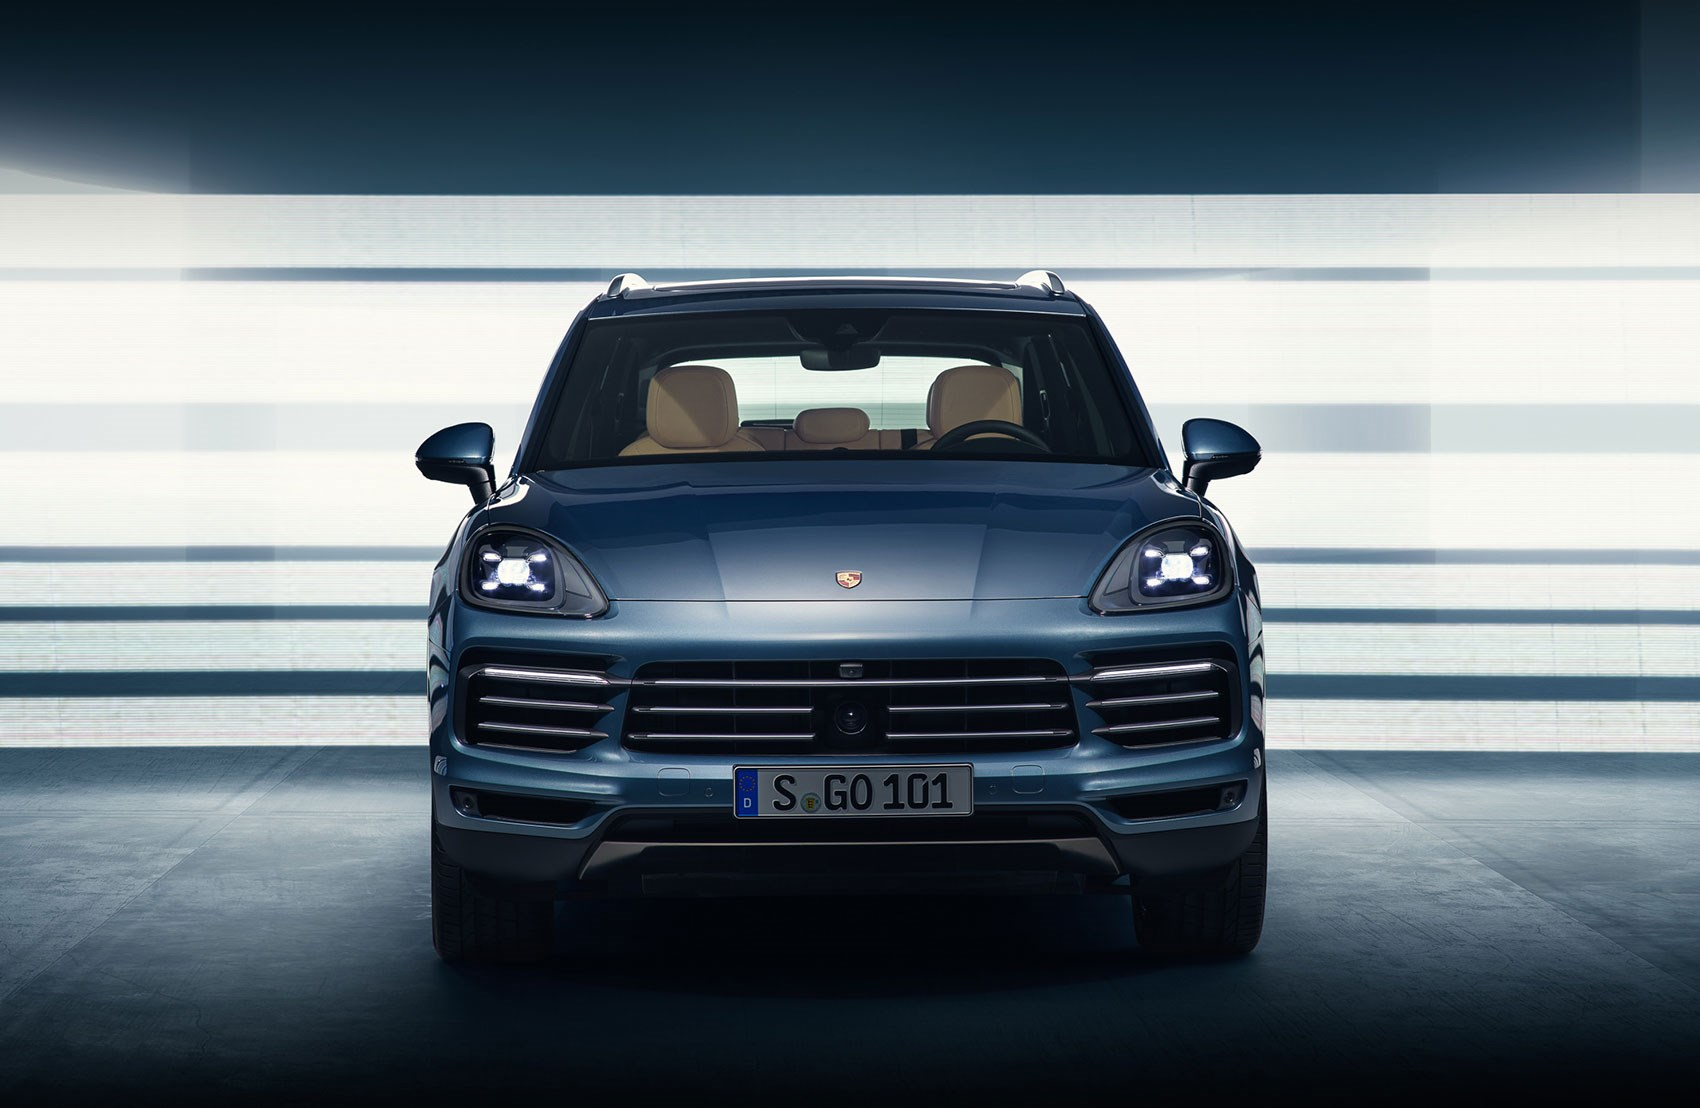 New 3rd Generation Porsche Cayenne Unveiled